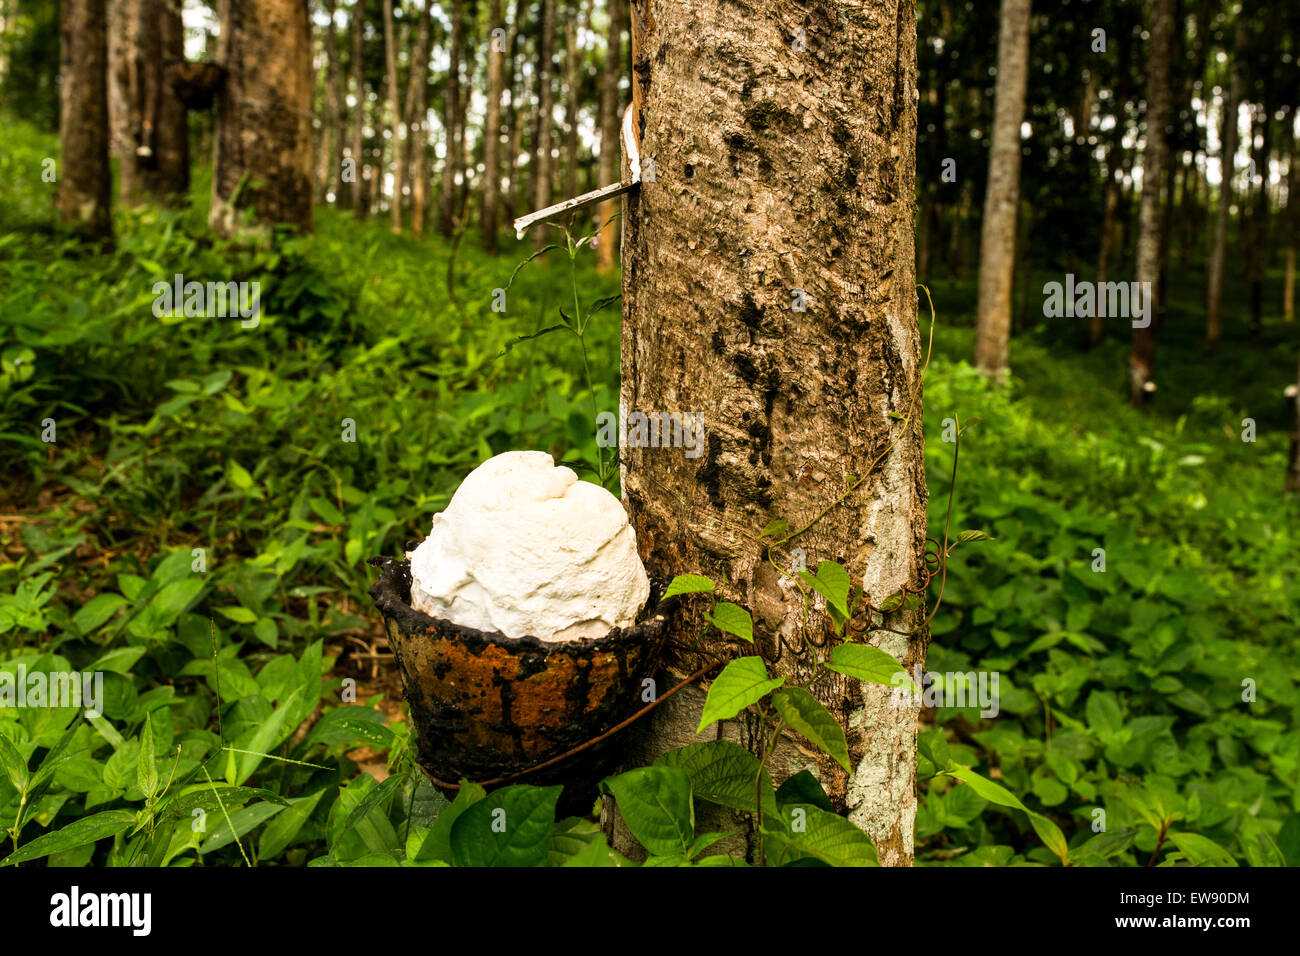 A tapped Pará rubber tree (Hevea brasiliensis) dripping latex into a cup for processing into natural rubber. Stock Photo